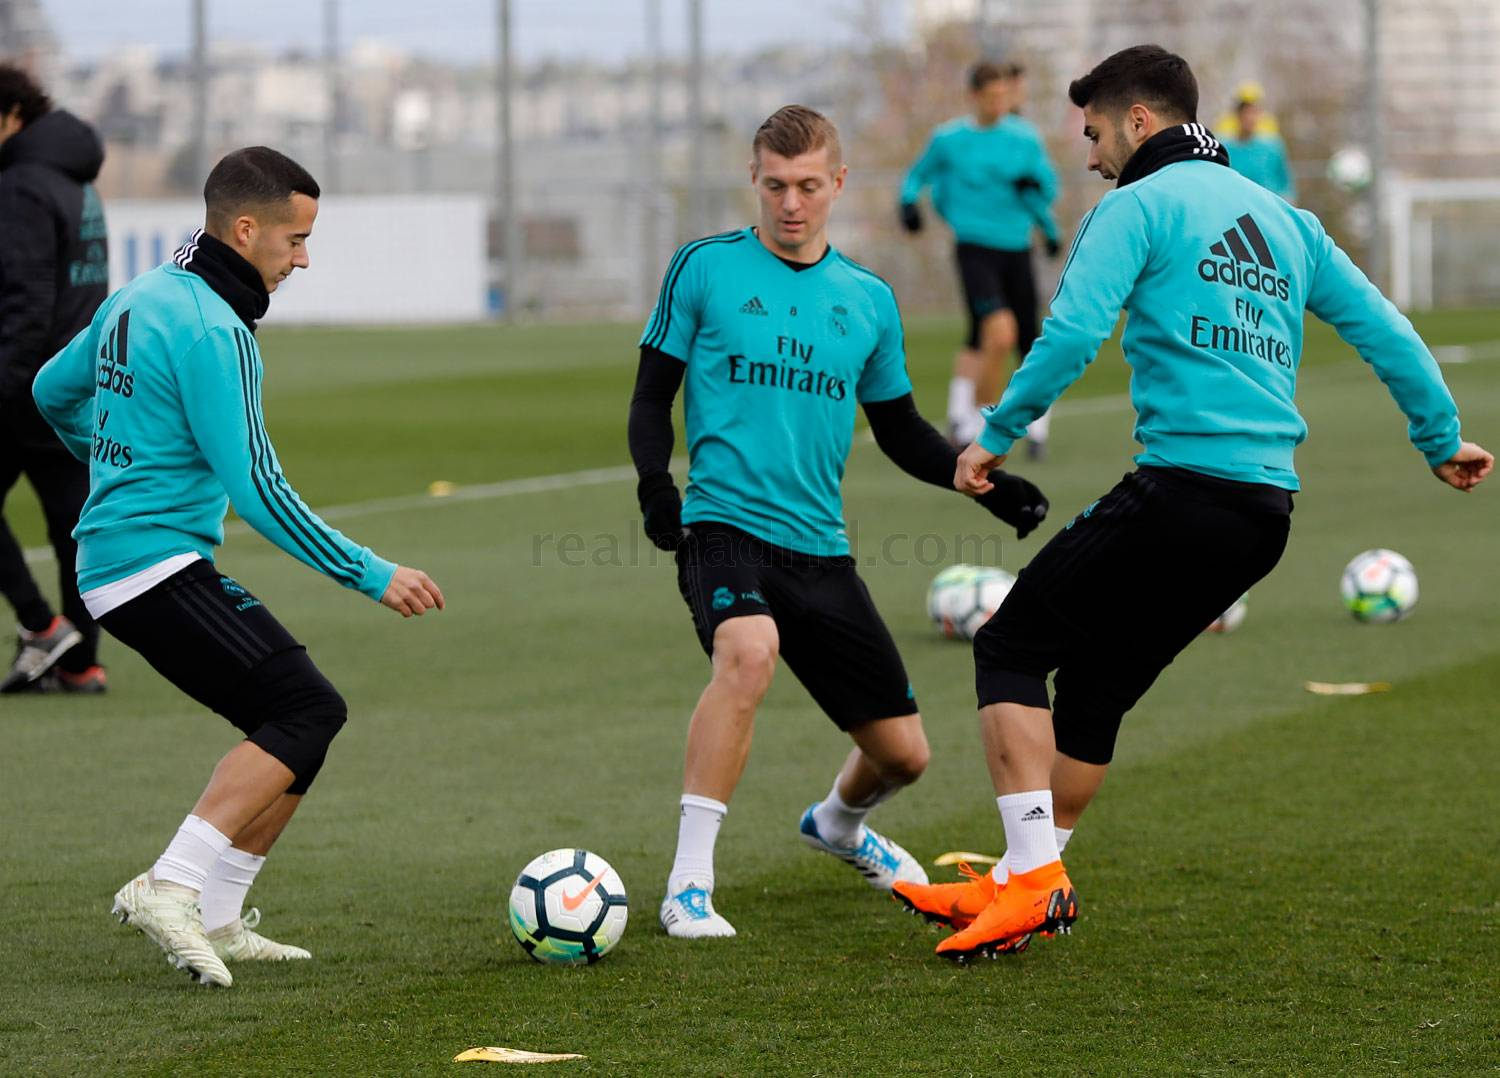 Real Madrid - Entrenamiento del Real Madrid - 13-04-2018